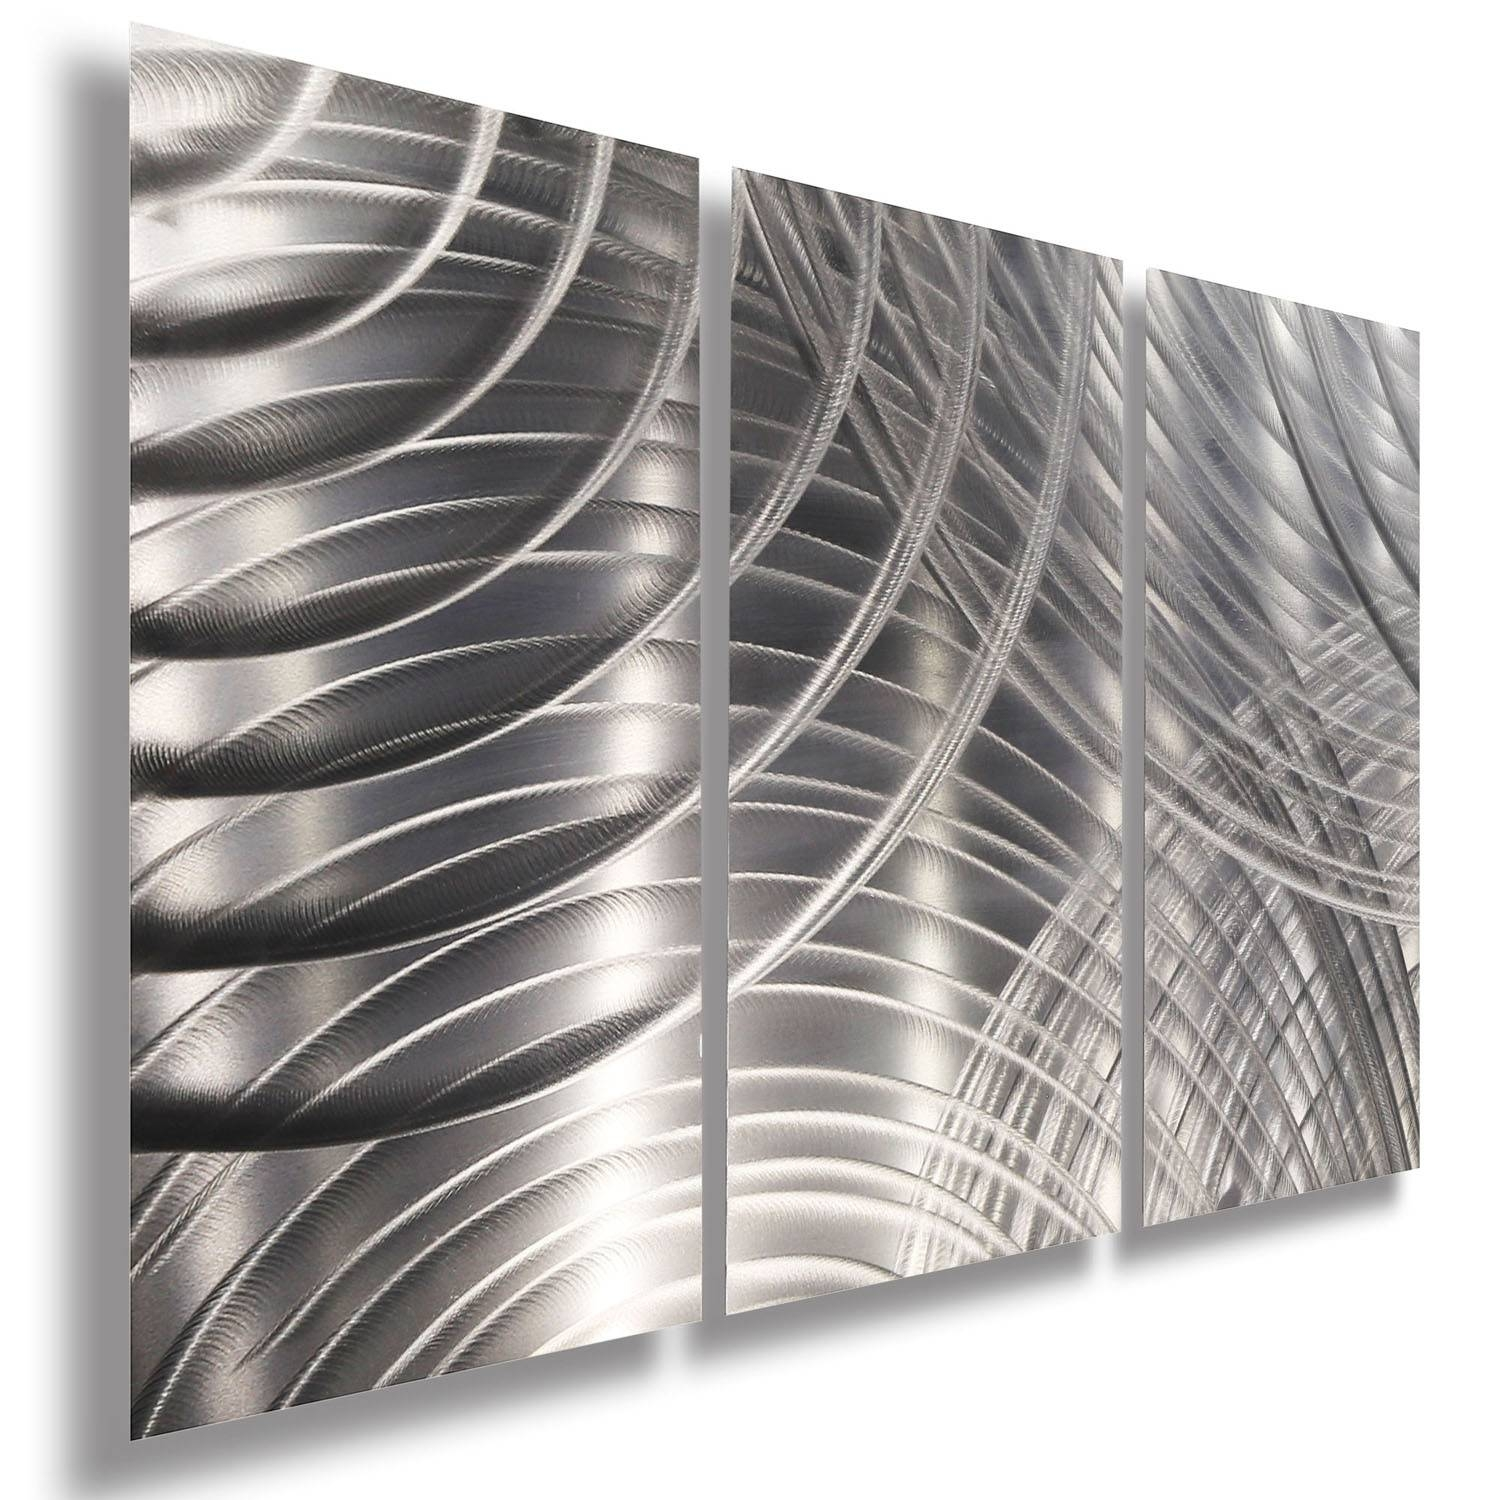 Equinox Ii 3p – All Silver 3 Panel Metal Wall Art Accentjon In Best And Newest Black And Silver Metal Wall Art (Gallery 16 of 20)